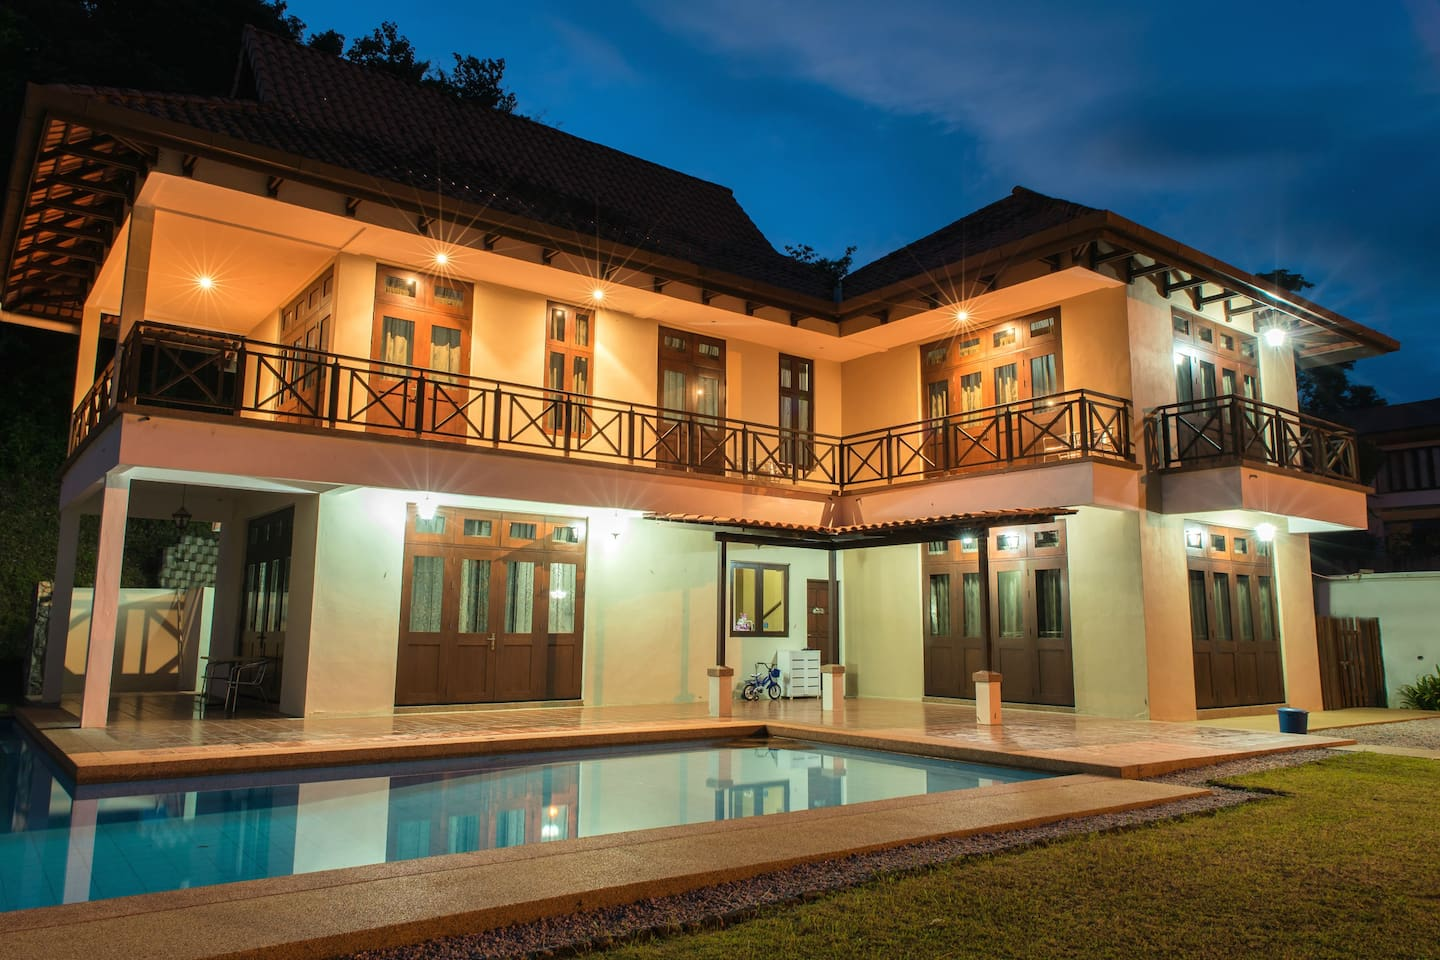 Choice of 3 Bedrooms Upstairs with private bathrooms in each room, for max total of 10 persons, with 24-hour Pool, Kitchen, and Living Room Access